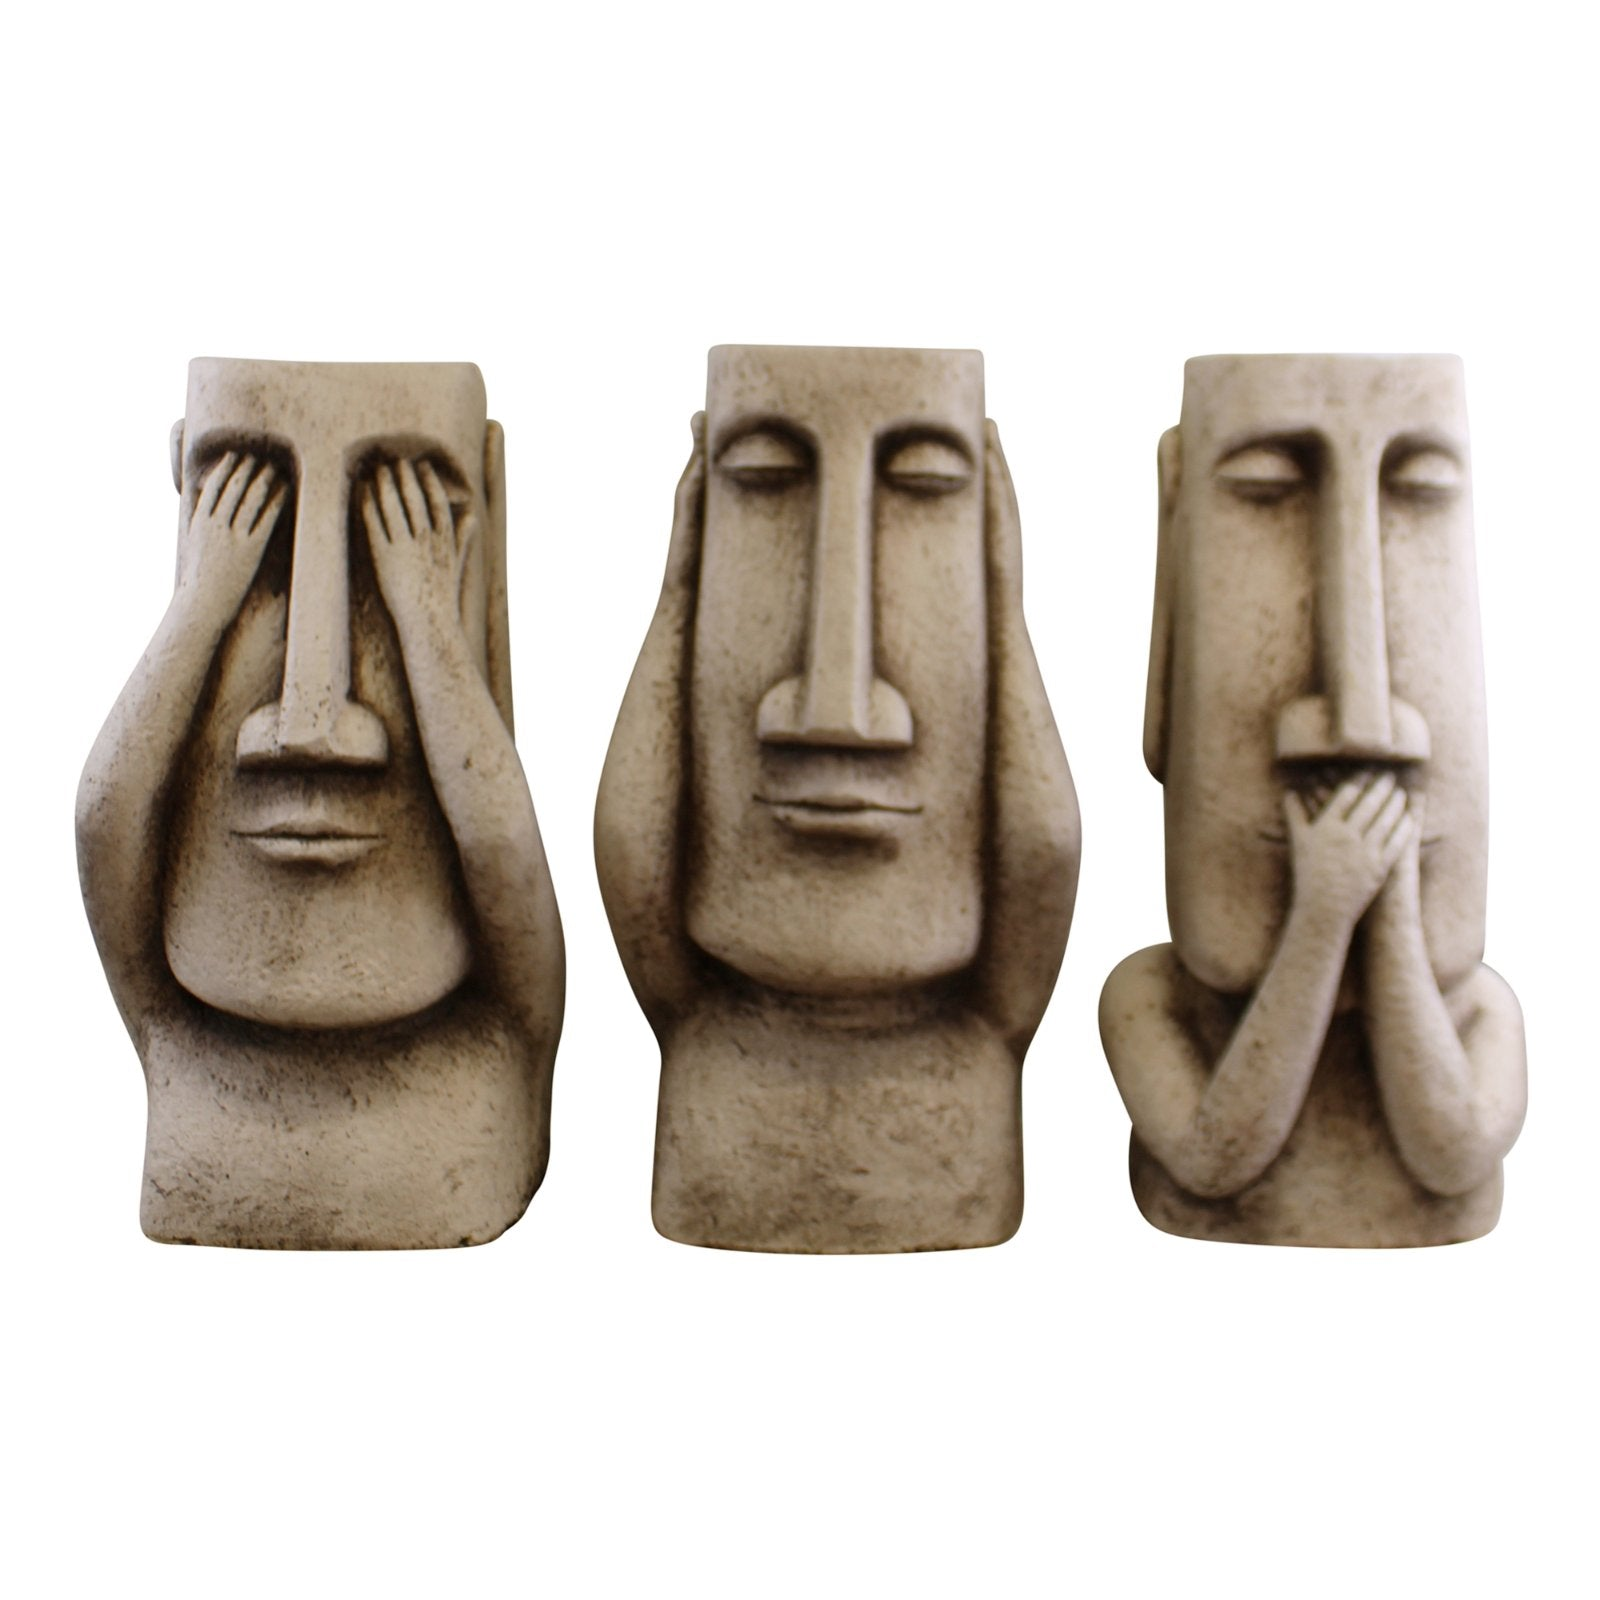 Set Of 3 Stone Effect Resurrection Island Giant Ornament Planters, Lawn & Garden by Low Cost Gifts